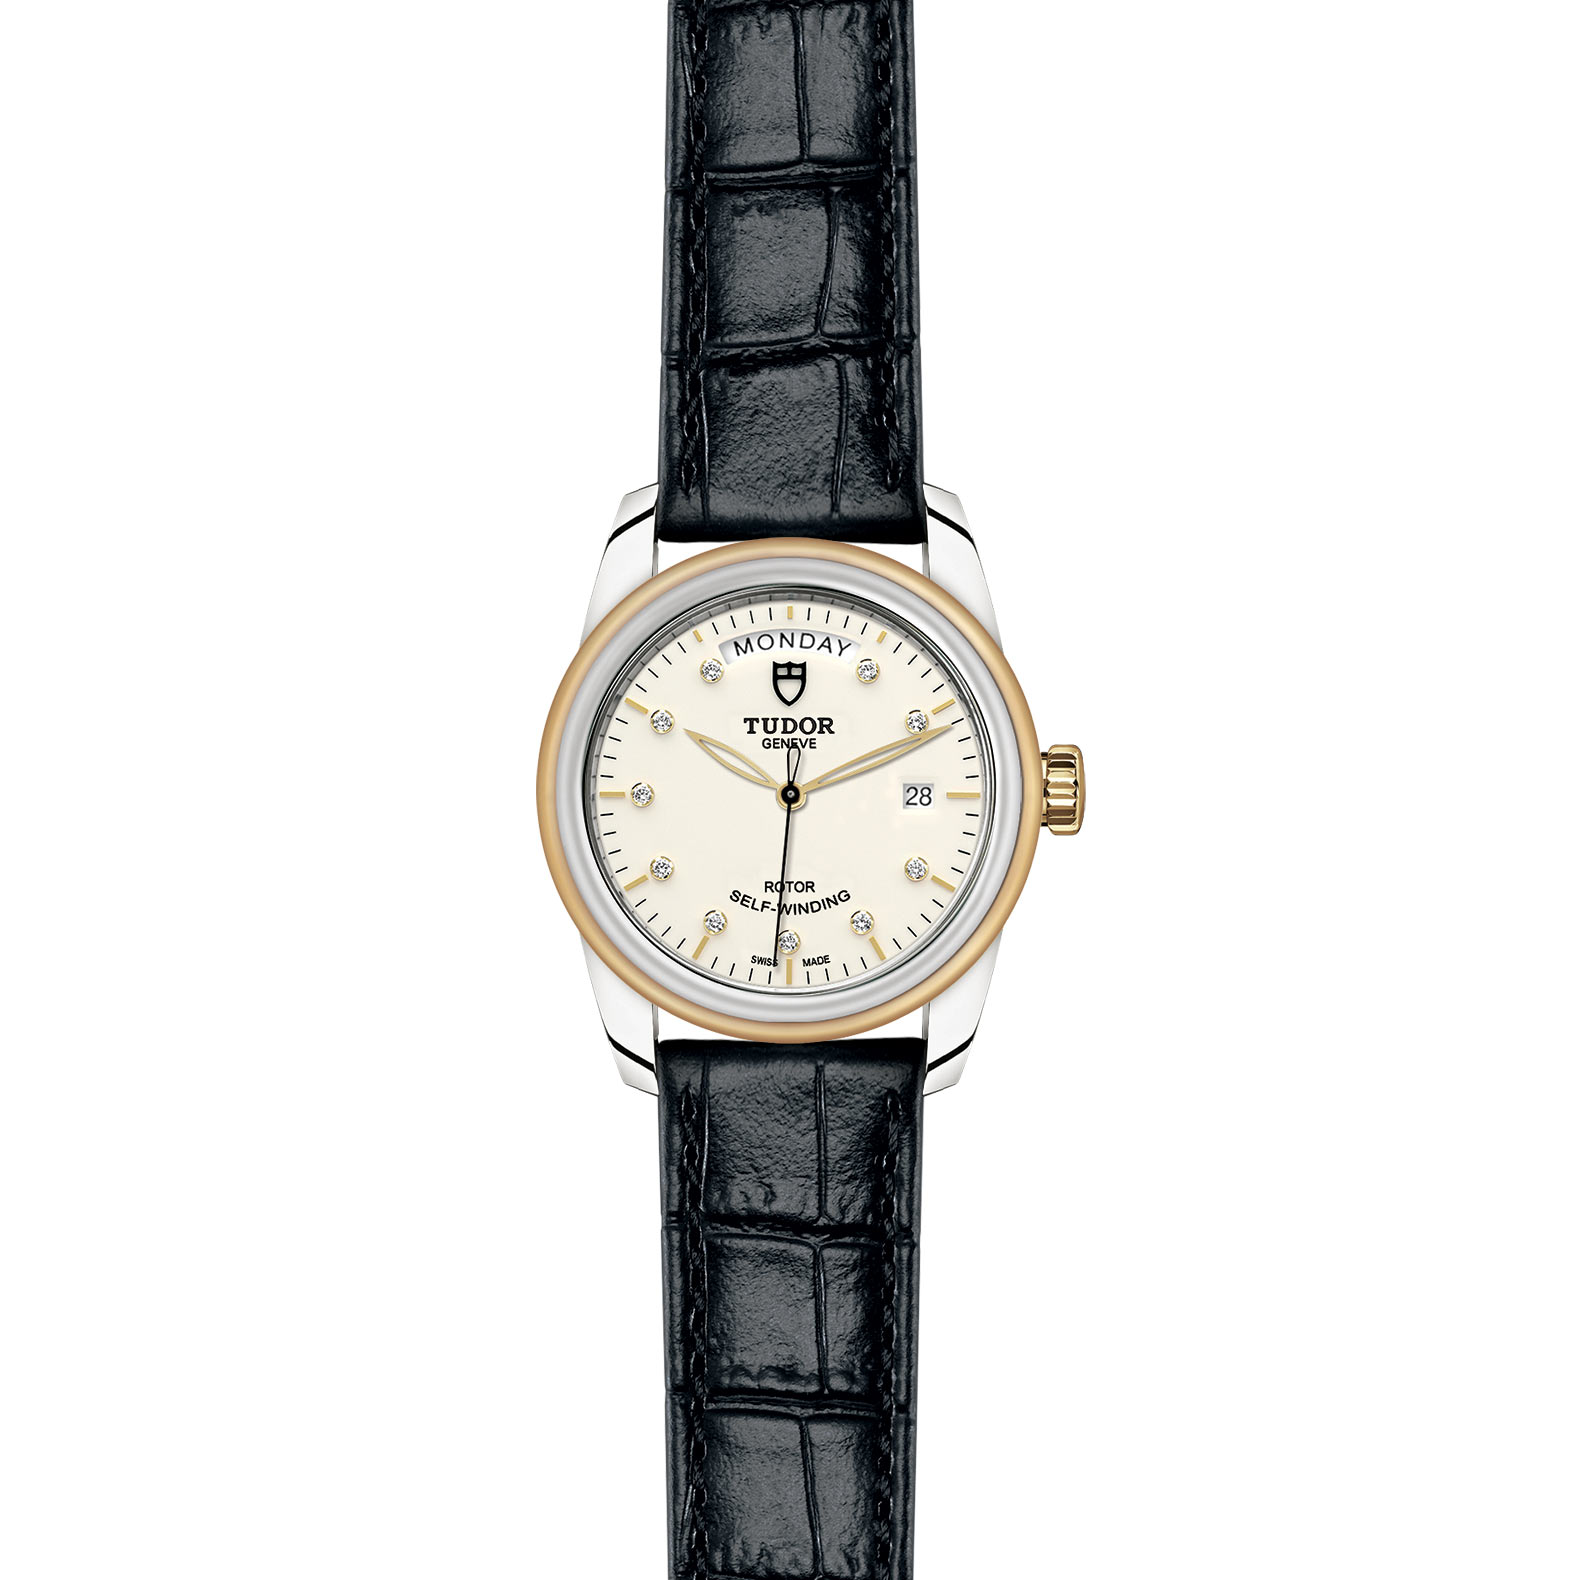 TUDOR Glamour Date Day M56003 0115 Frontfacing